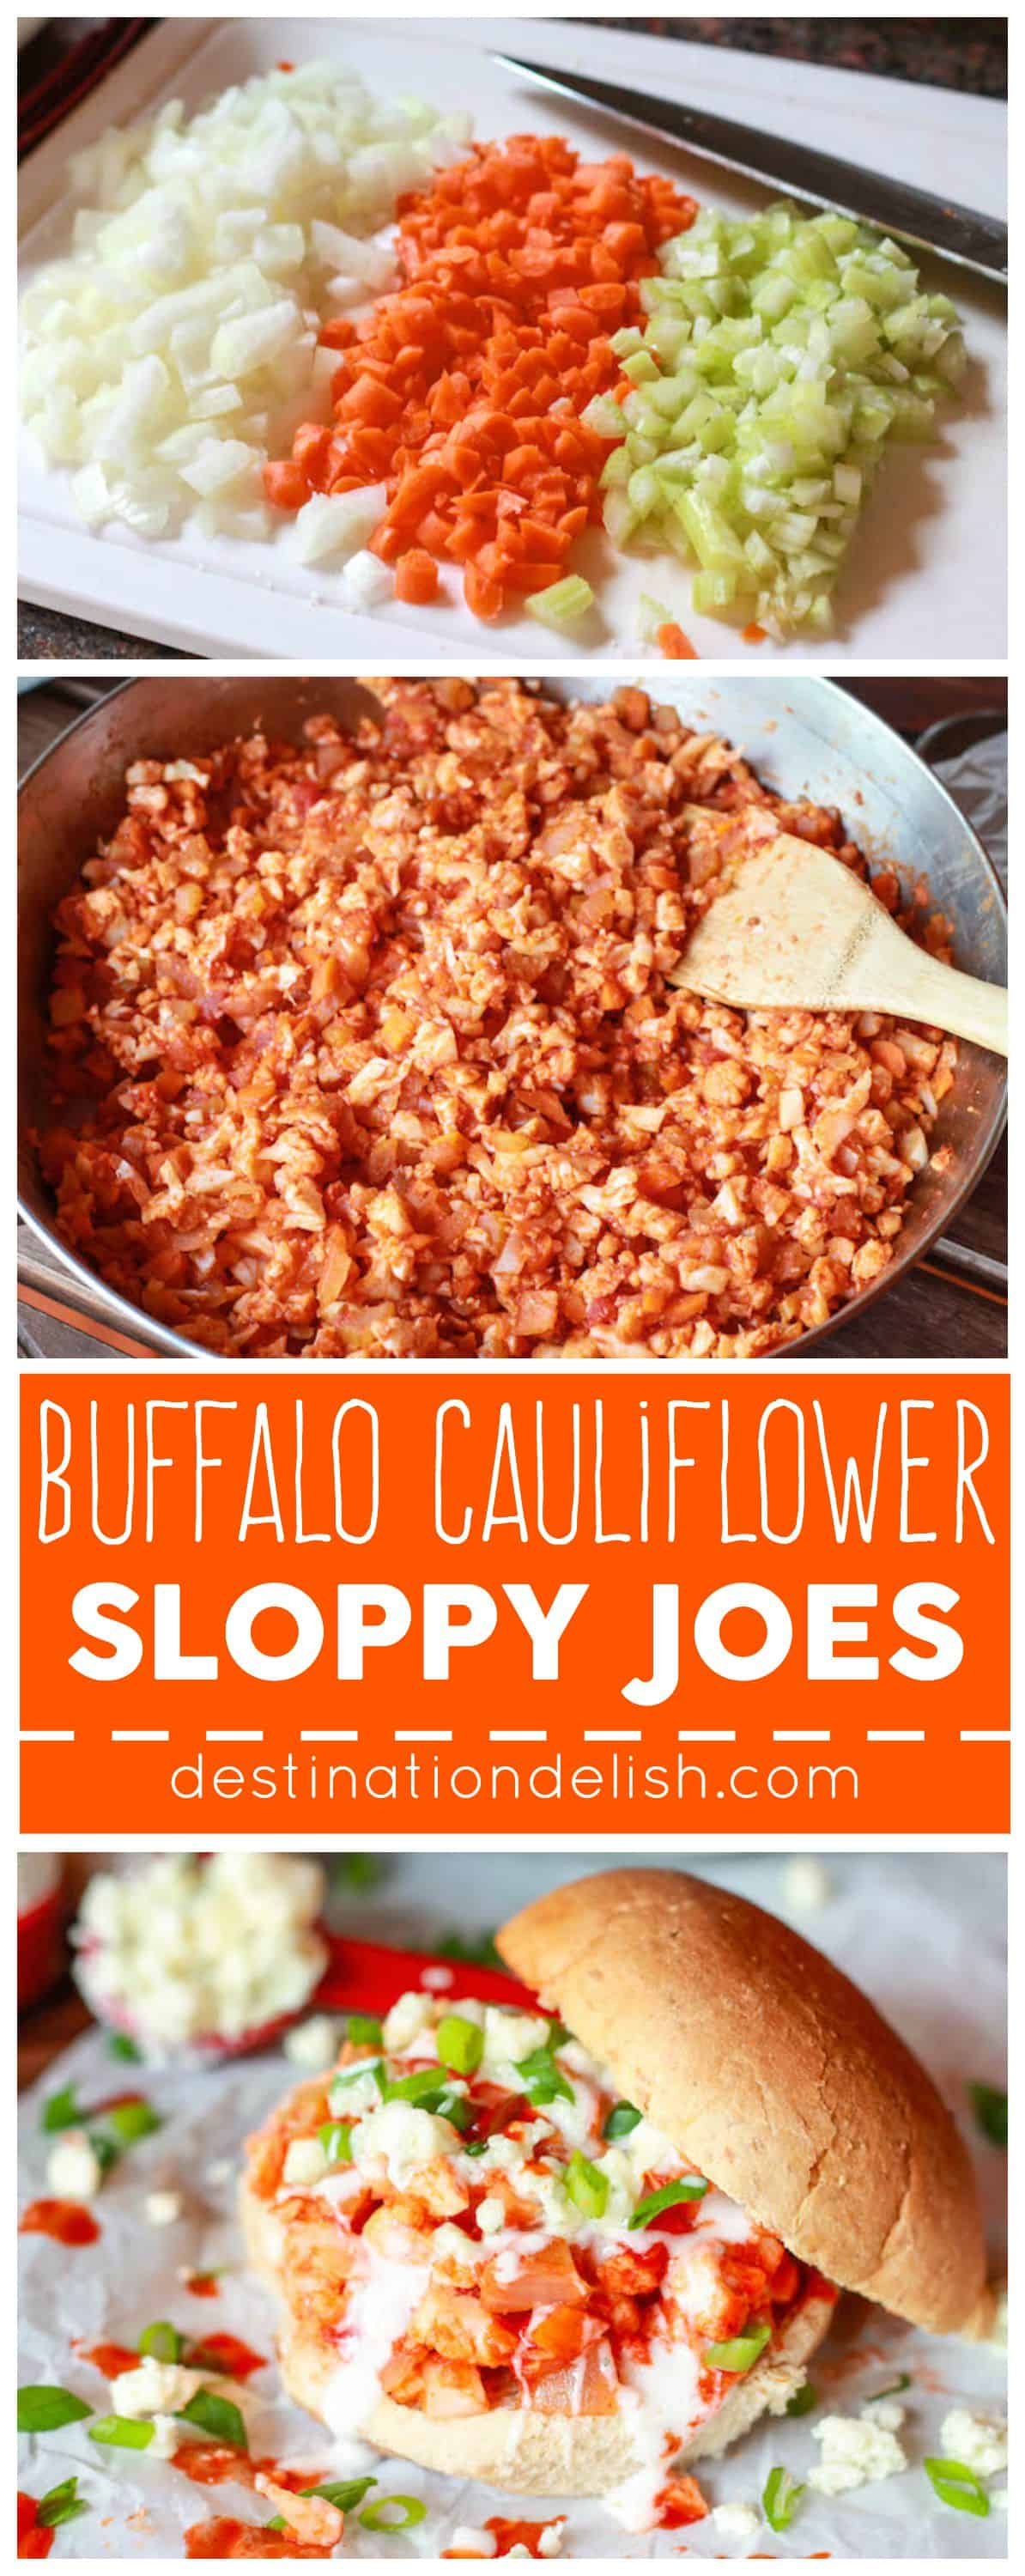 Buffalo Cauliflower Sloppy Joes